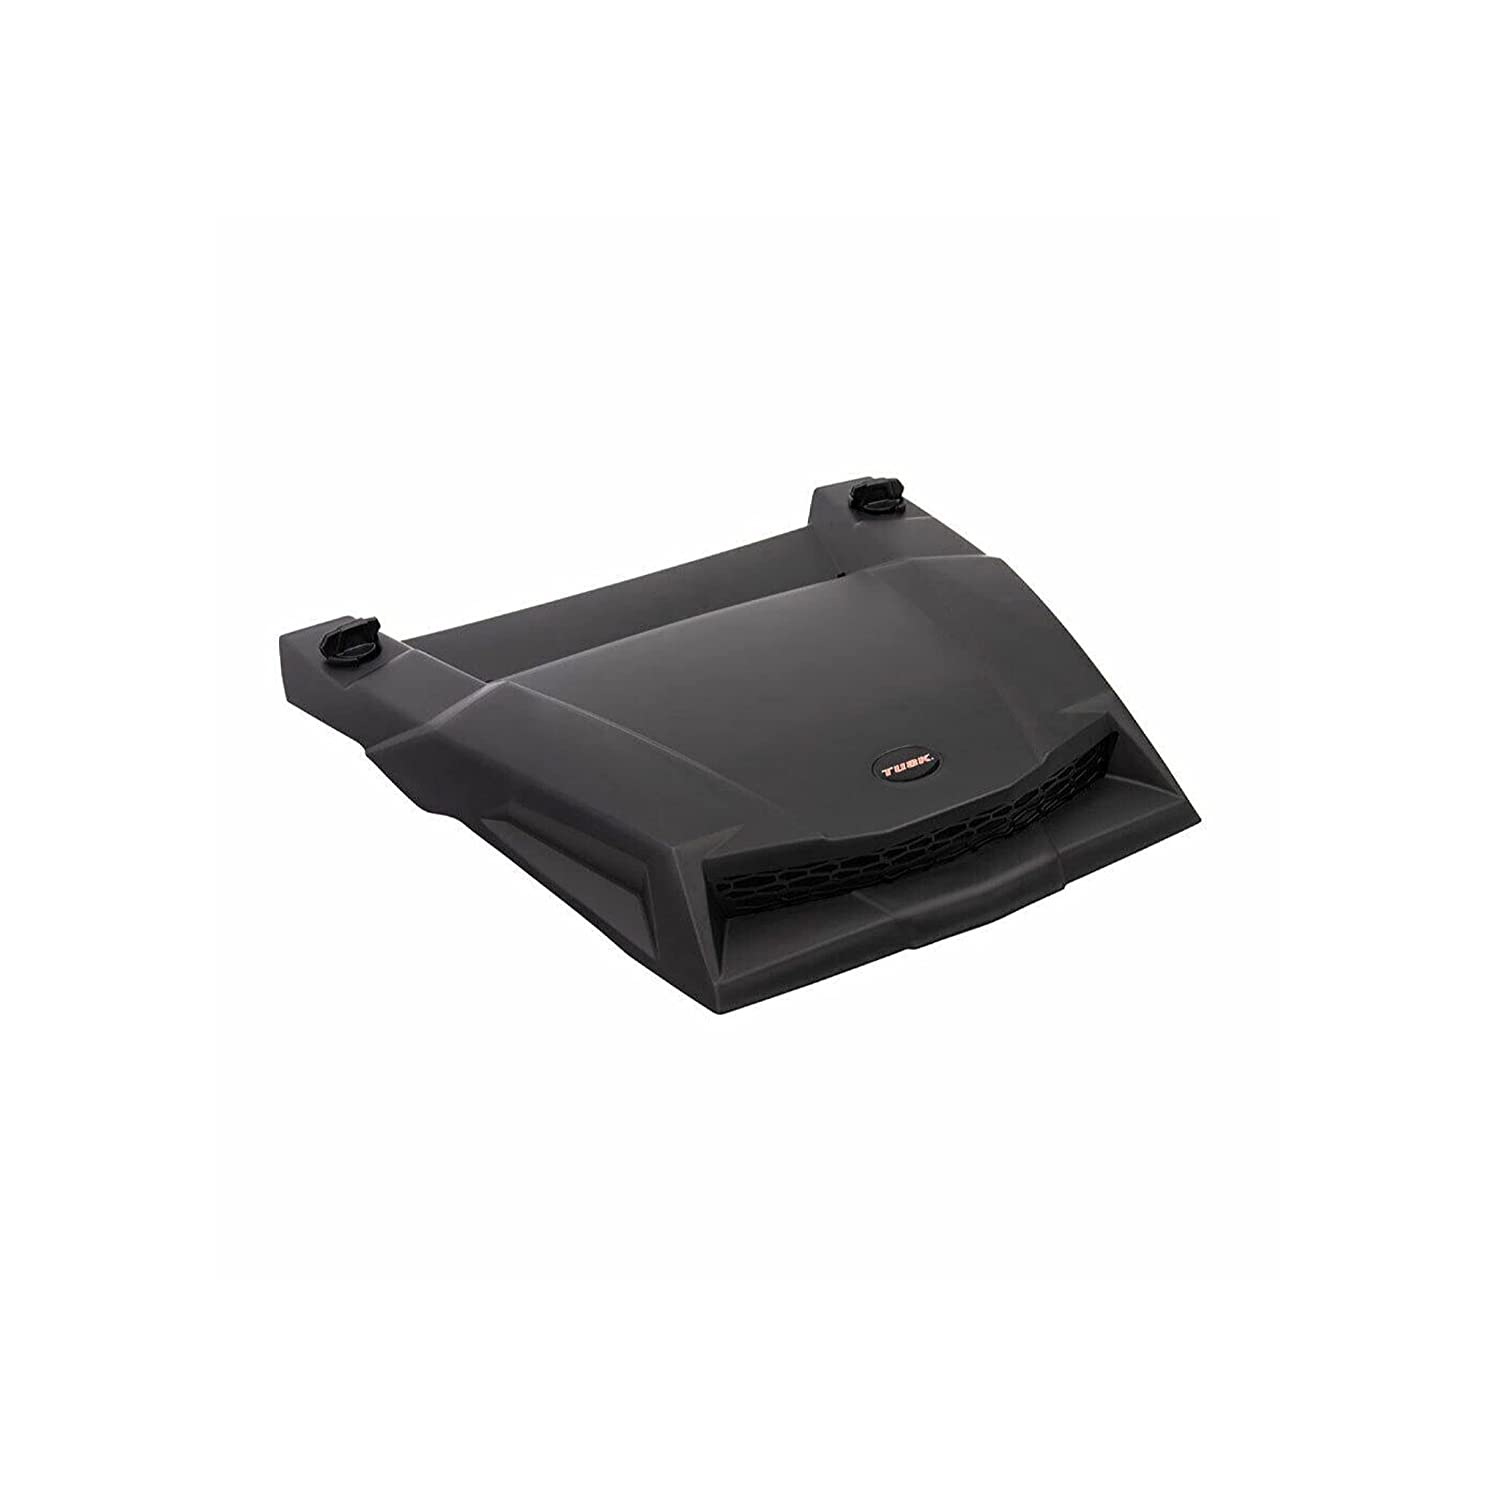 Manufacturer direct delivery forUTV Hood Black - Fits: forPolaris 2016-20181 RZR EPS Turbo XP free shipping